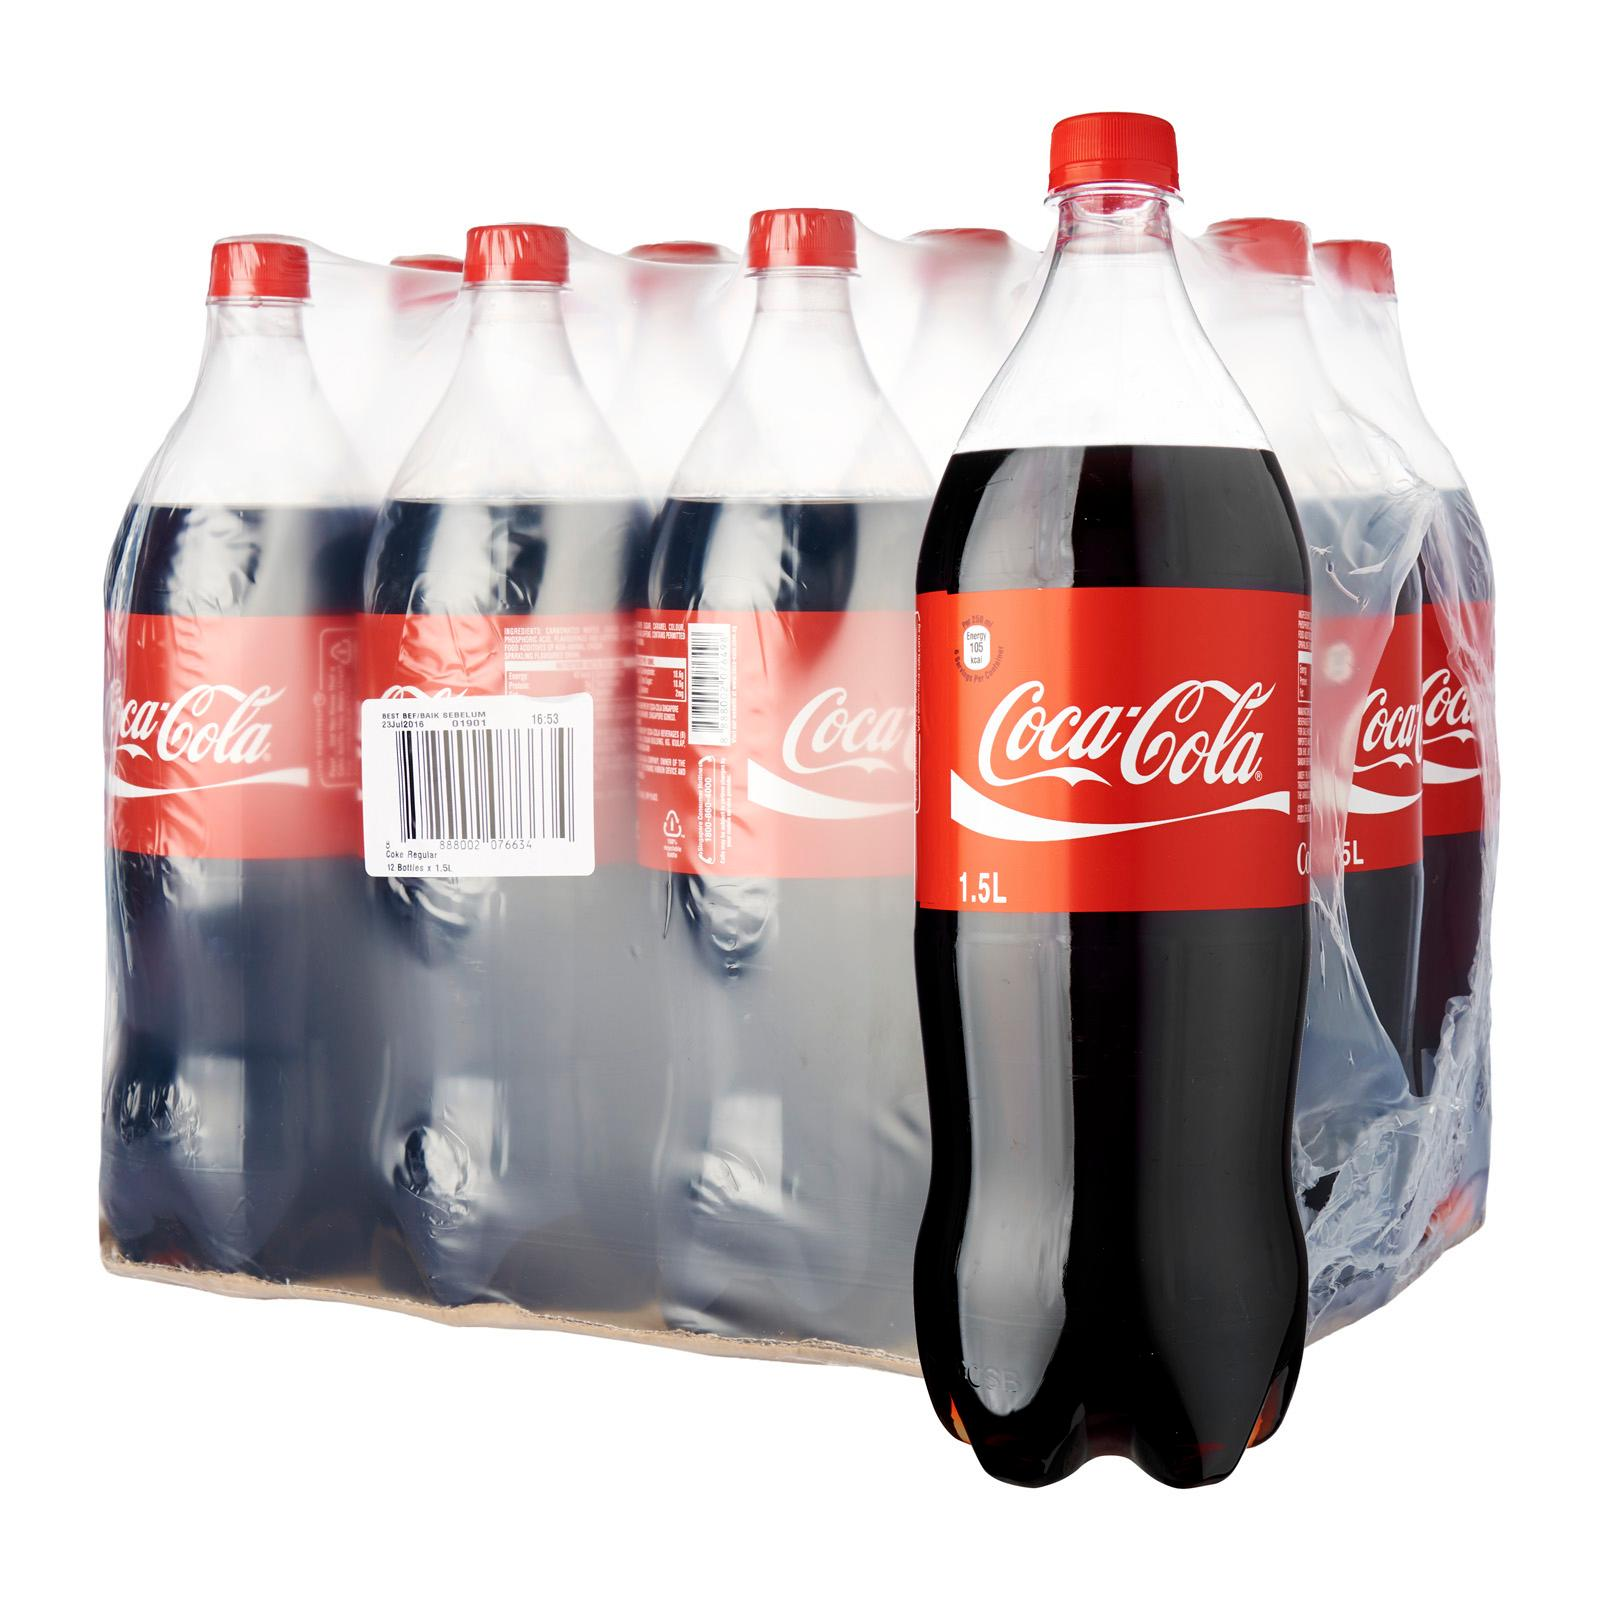 Coca Cola Regular 12 x 1.5L